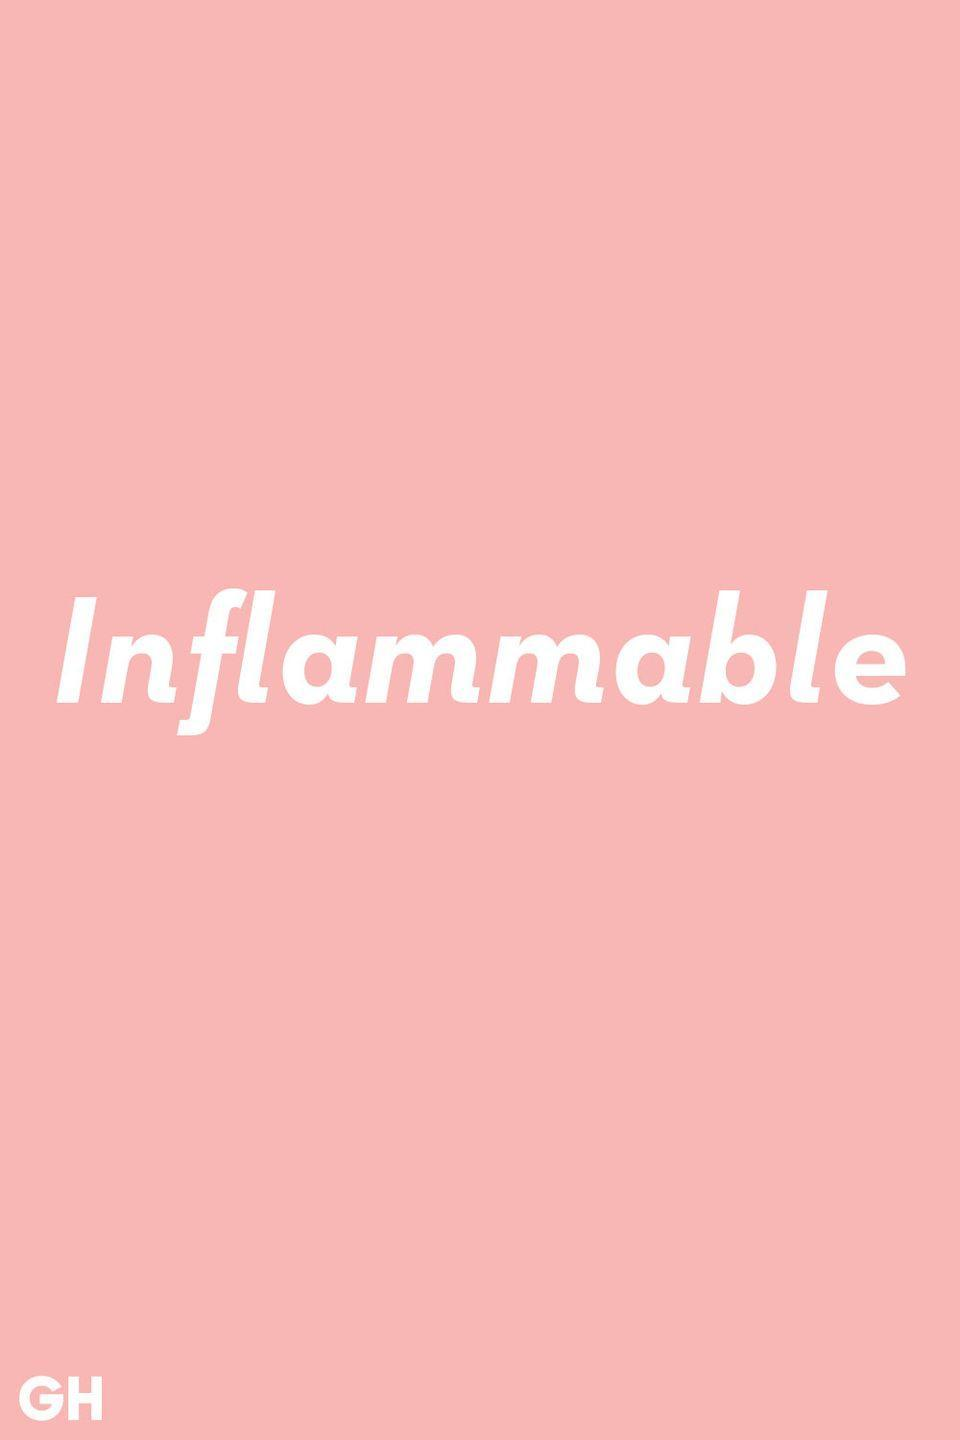 <p>Inflammable doesn't mean something is not flammable. It's a synonym for flammable meaning easily set on fire.</p>